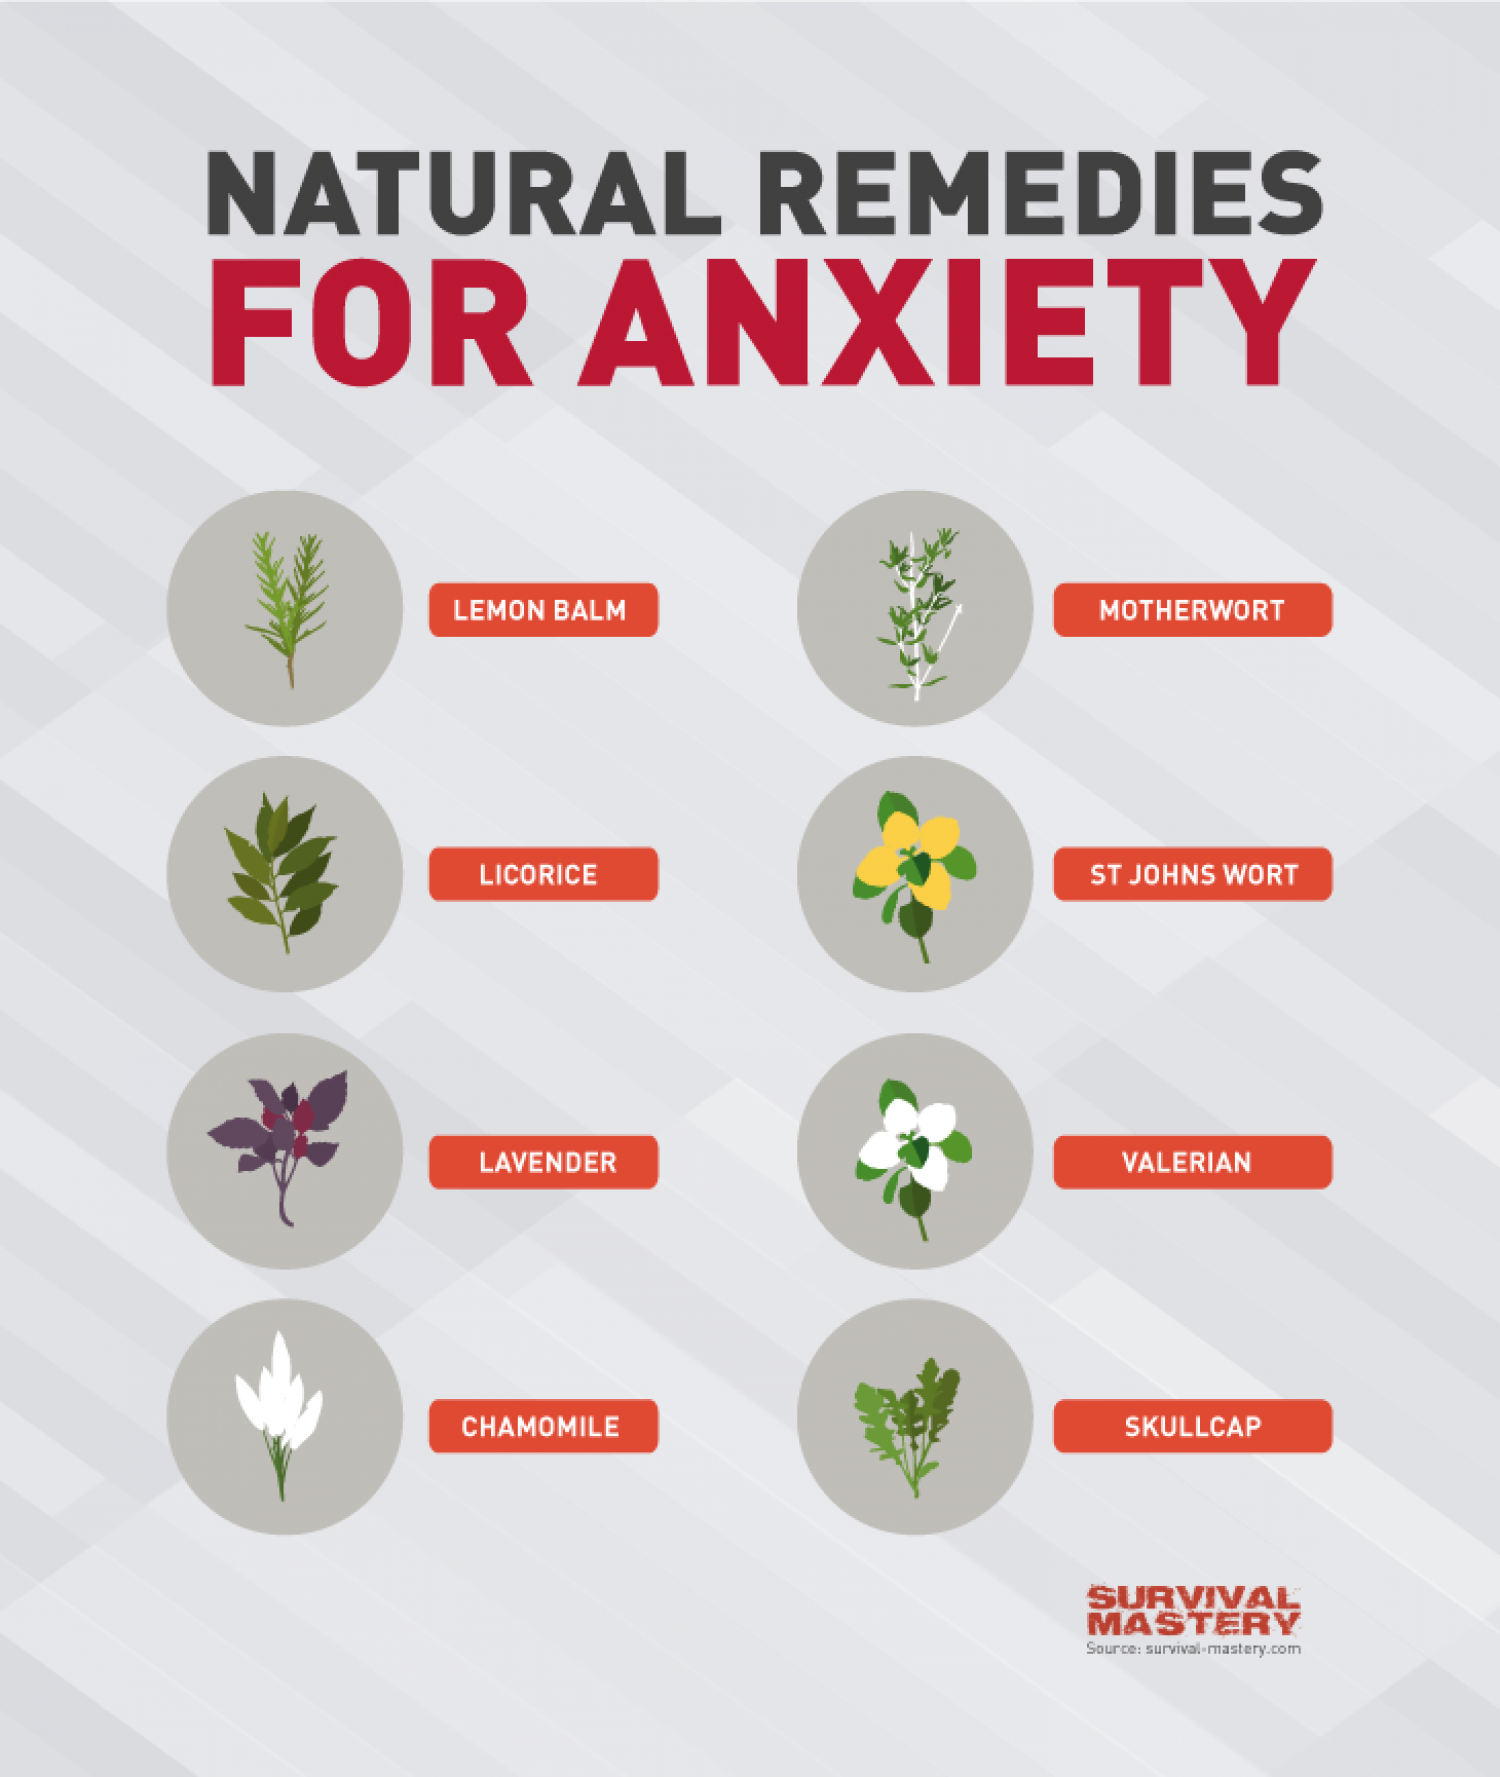 Natural Remedies for Anxiety Infographic Infographic